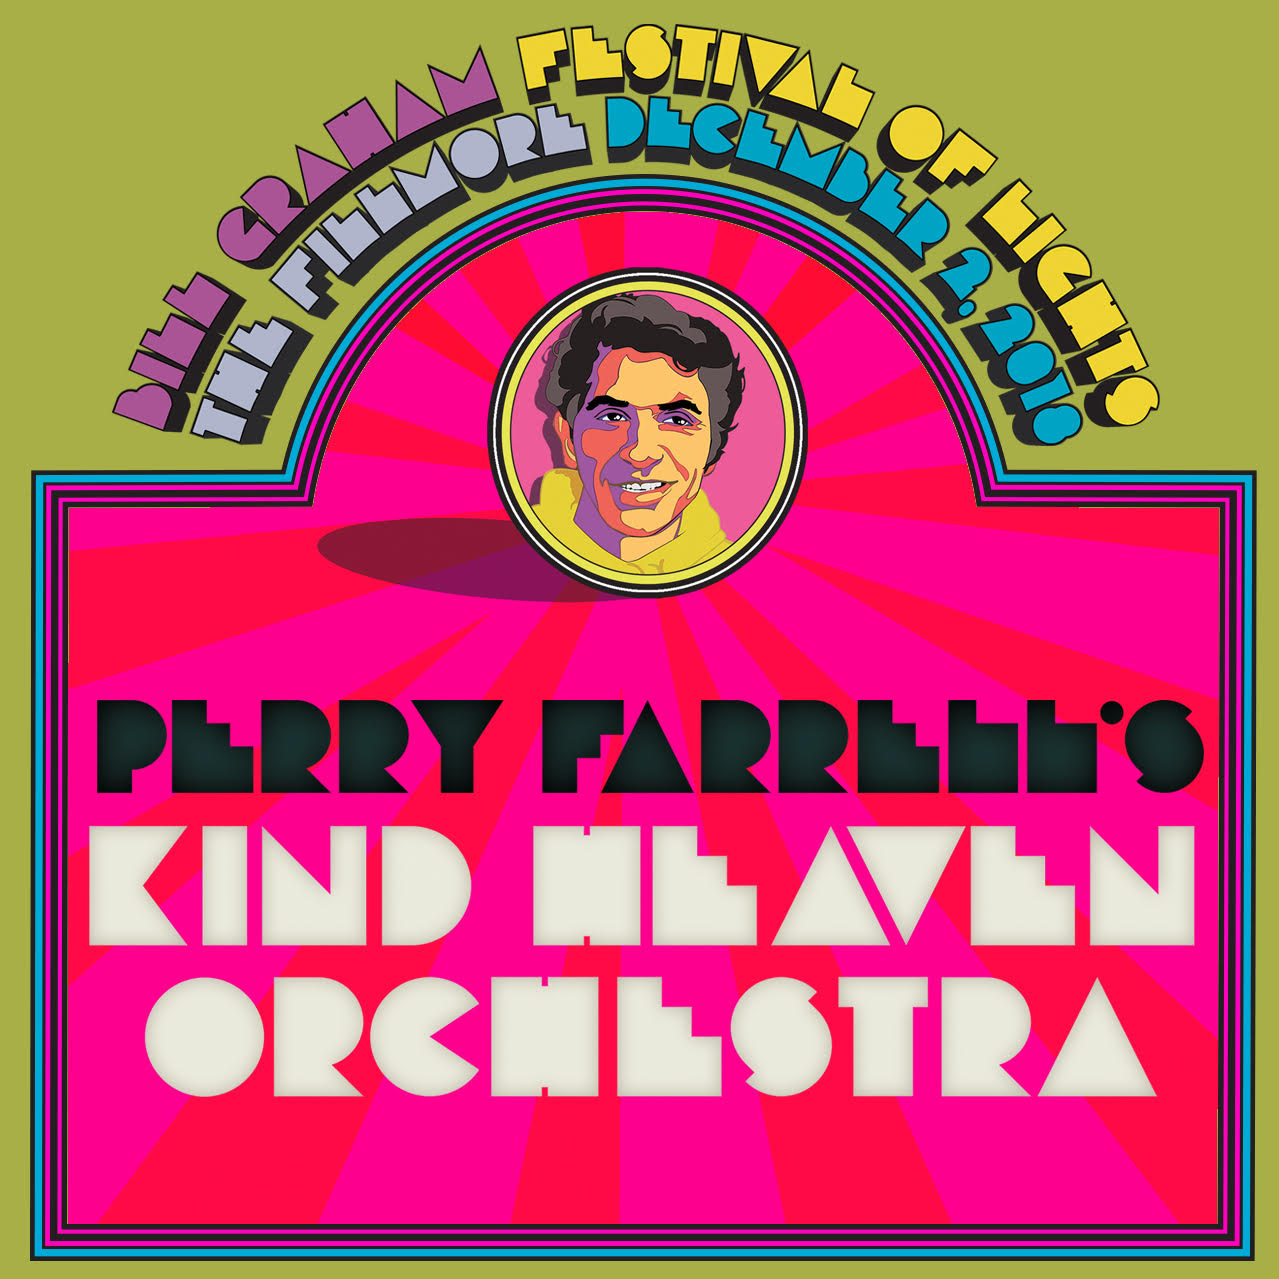 12/2 : Perry Farrell's Kind Heaven Orchestra Balkan Bump Jerry's Kosher Deli